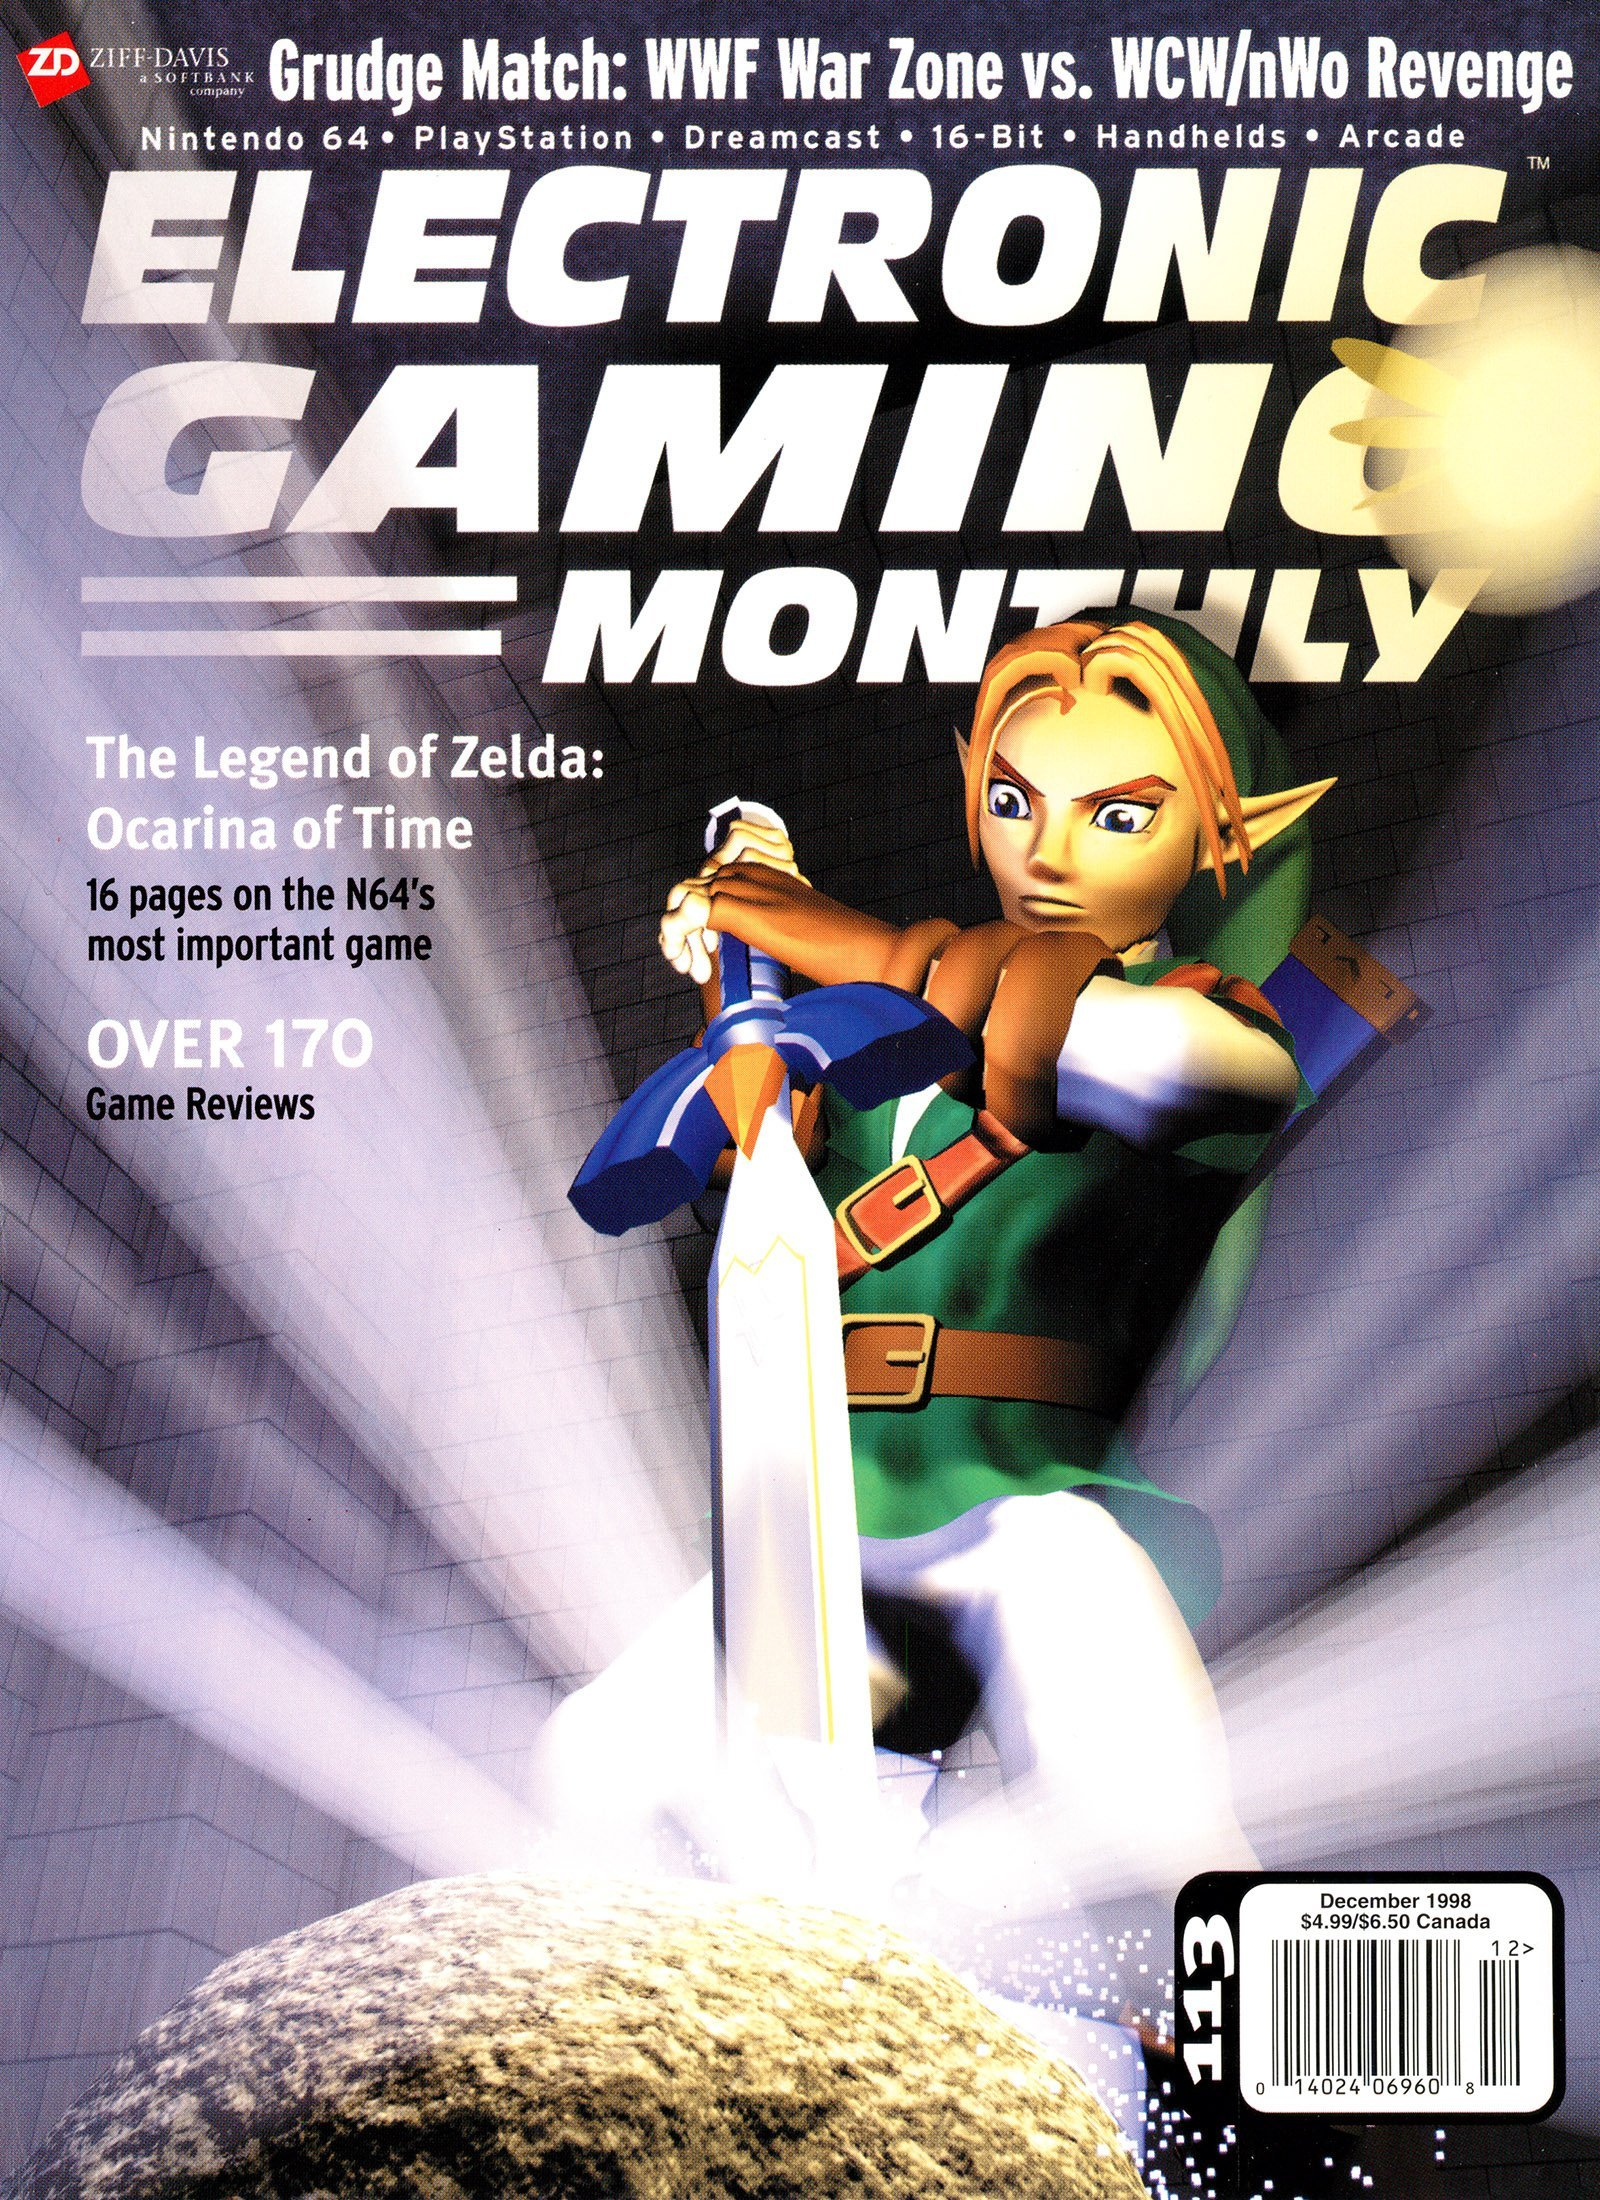 Electronic Gaming Monthly Issue 113 (December 1998)